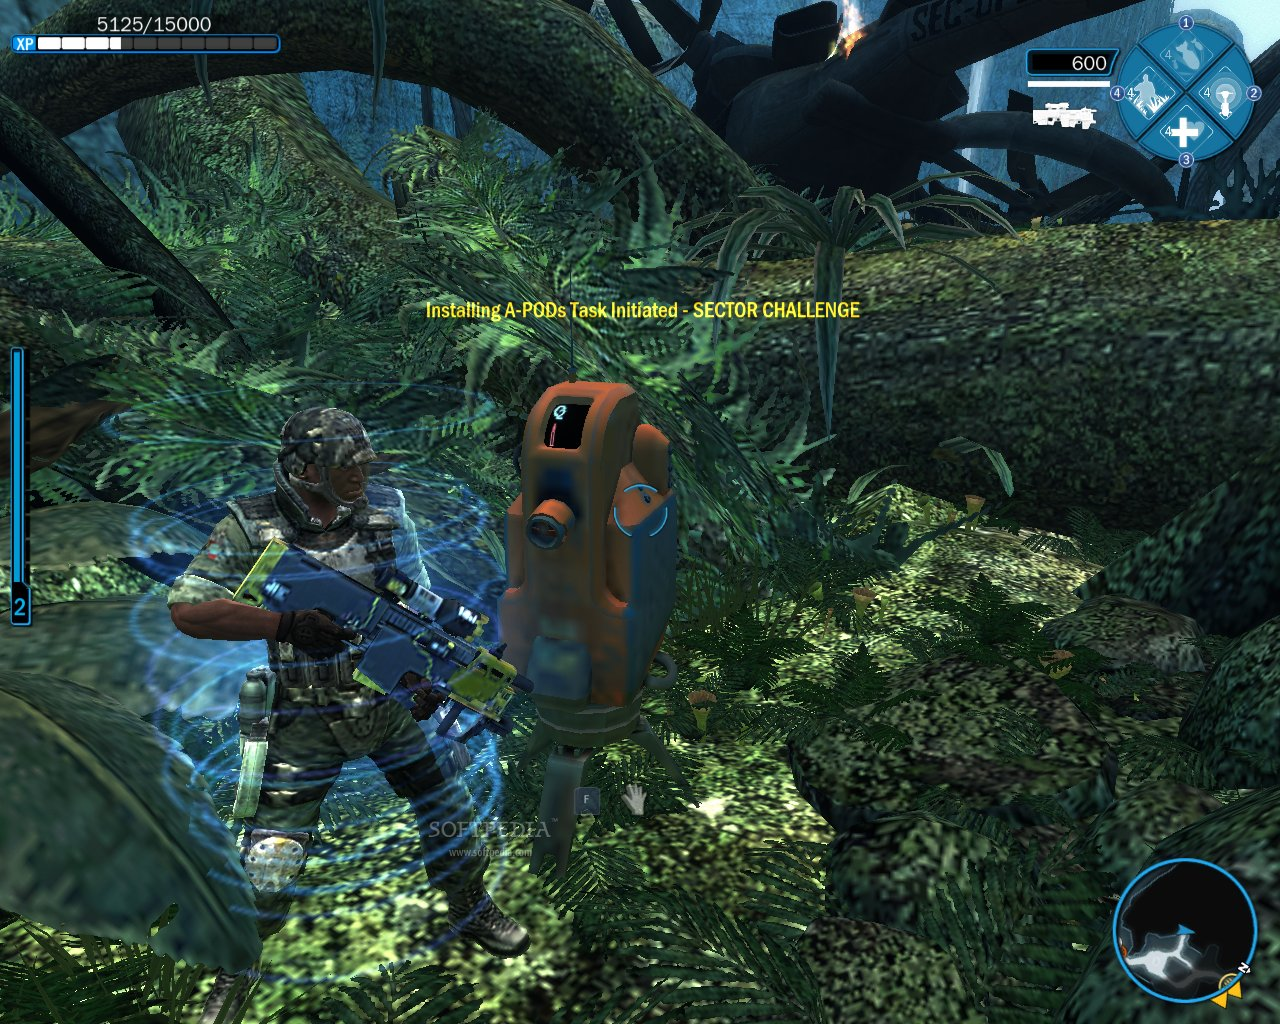 James Cameron S Avatar The Game : James cameron s avatar the game demo download